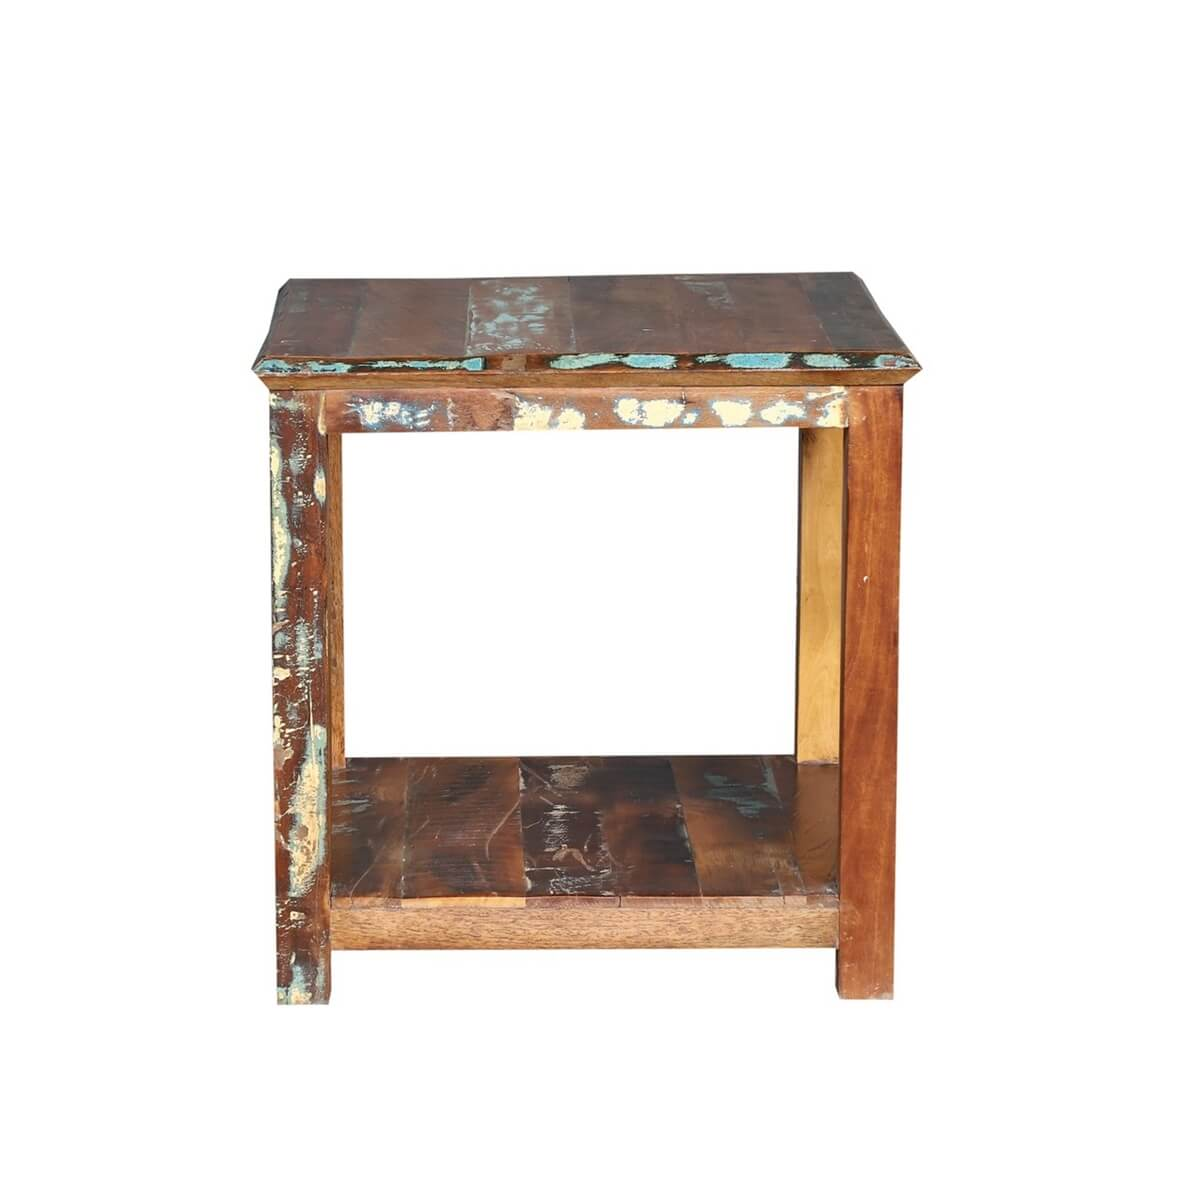 Corinne Distressed Reclaimed Wood Square 2 Tier Rustic End Table